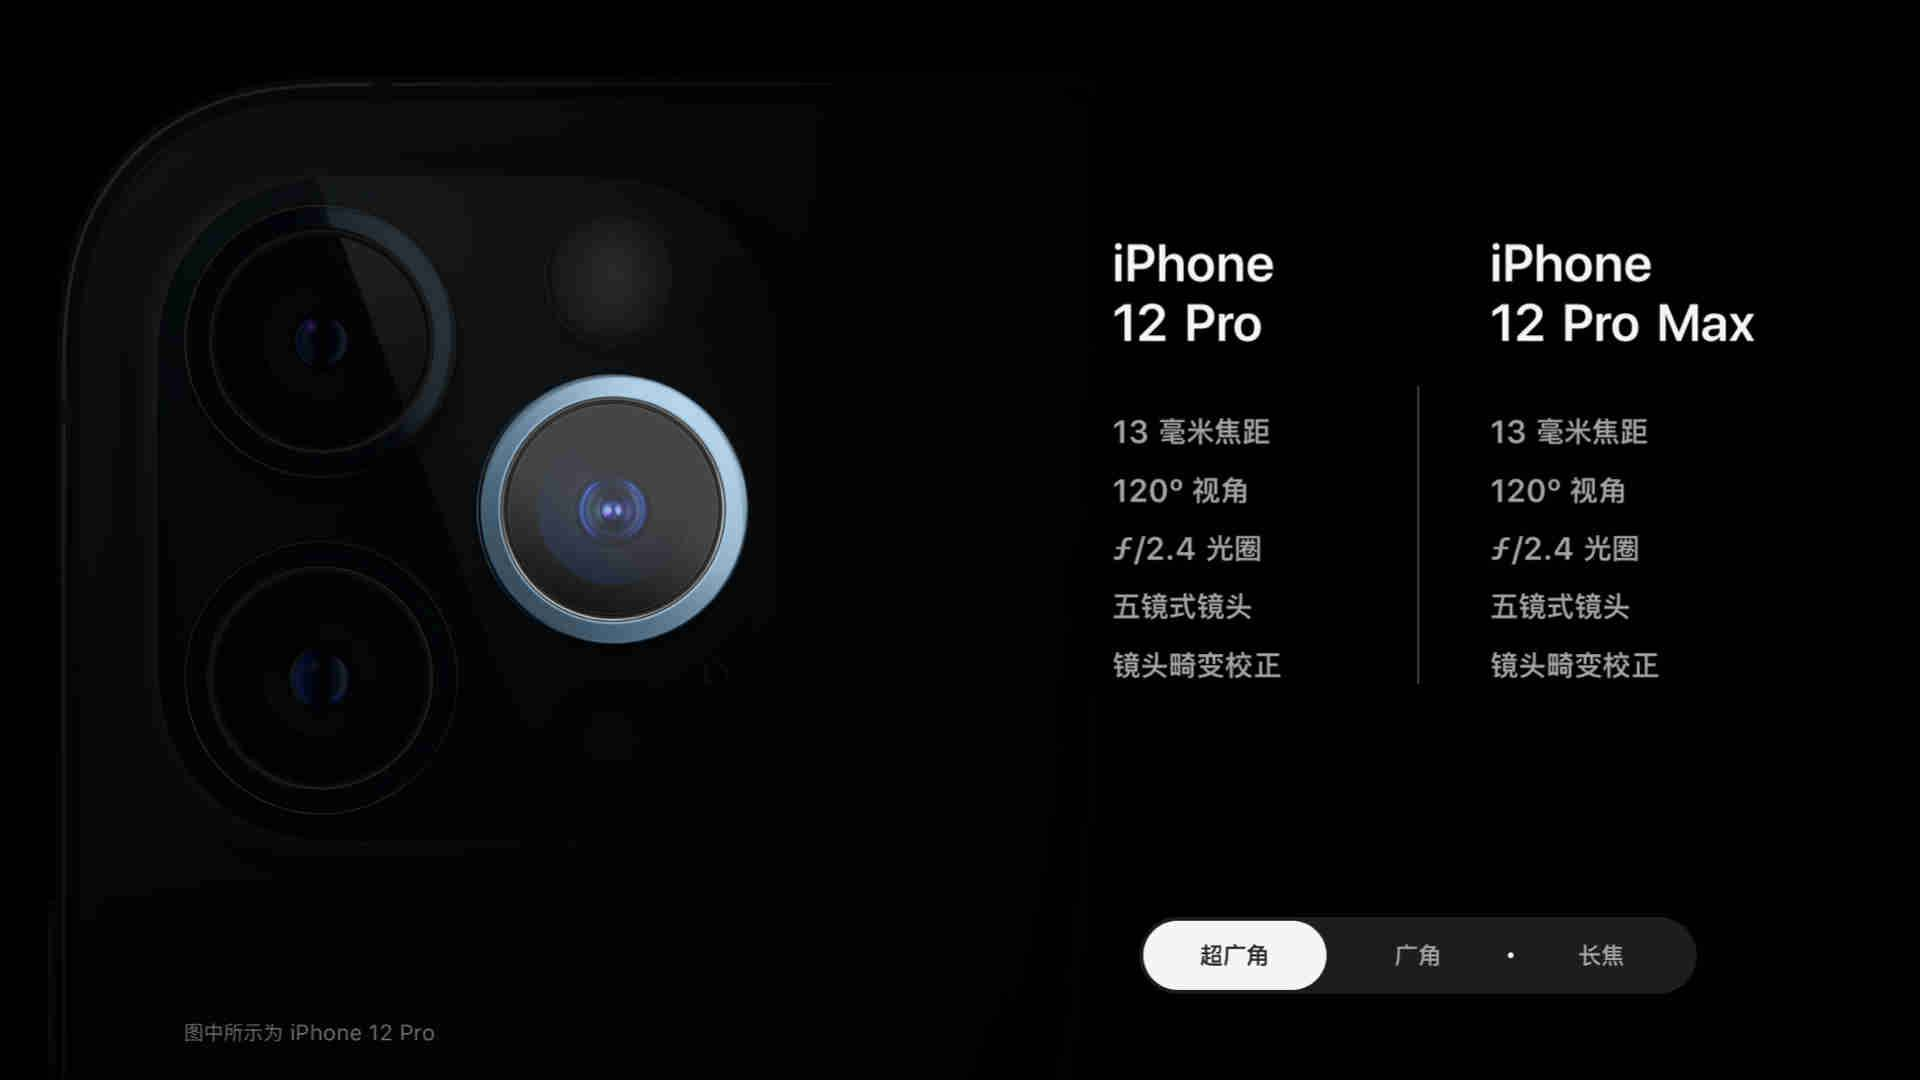 Launch%20Photos%20iPhone%2012%20Pro,%20iPhone%2012%20Pro%20Max